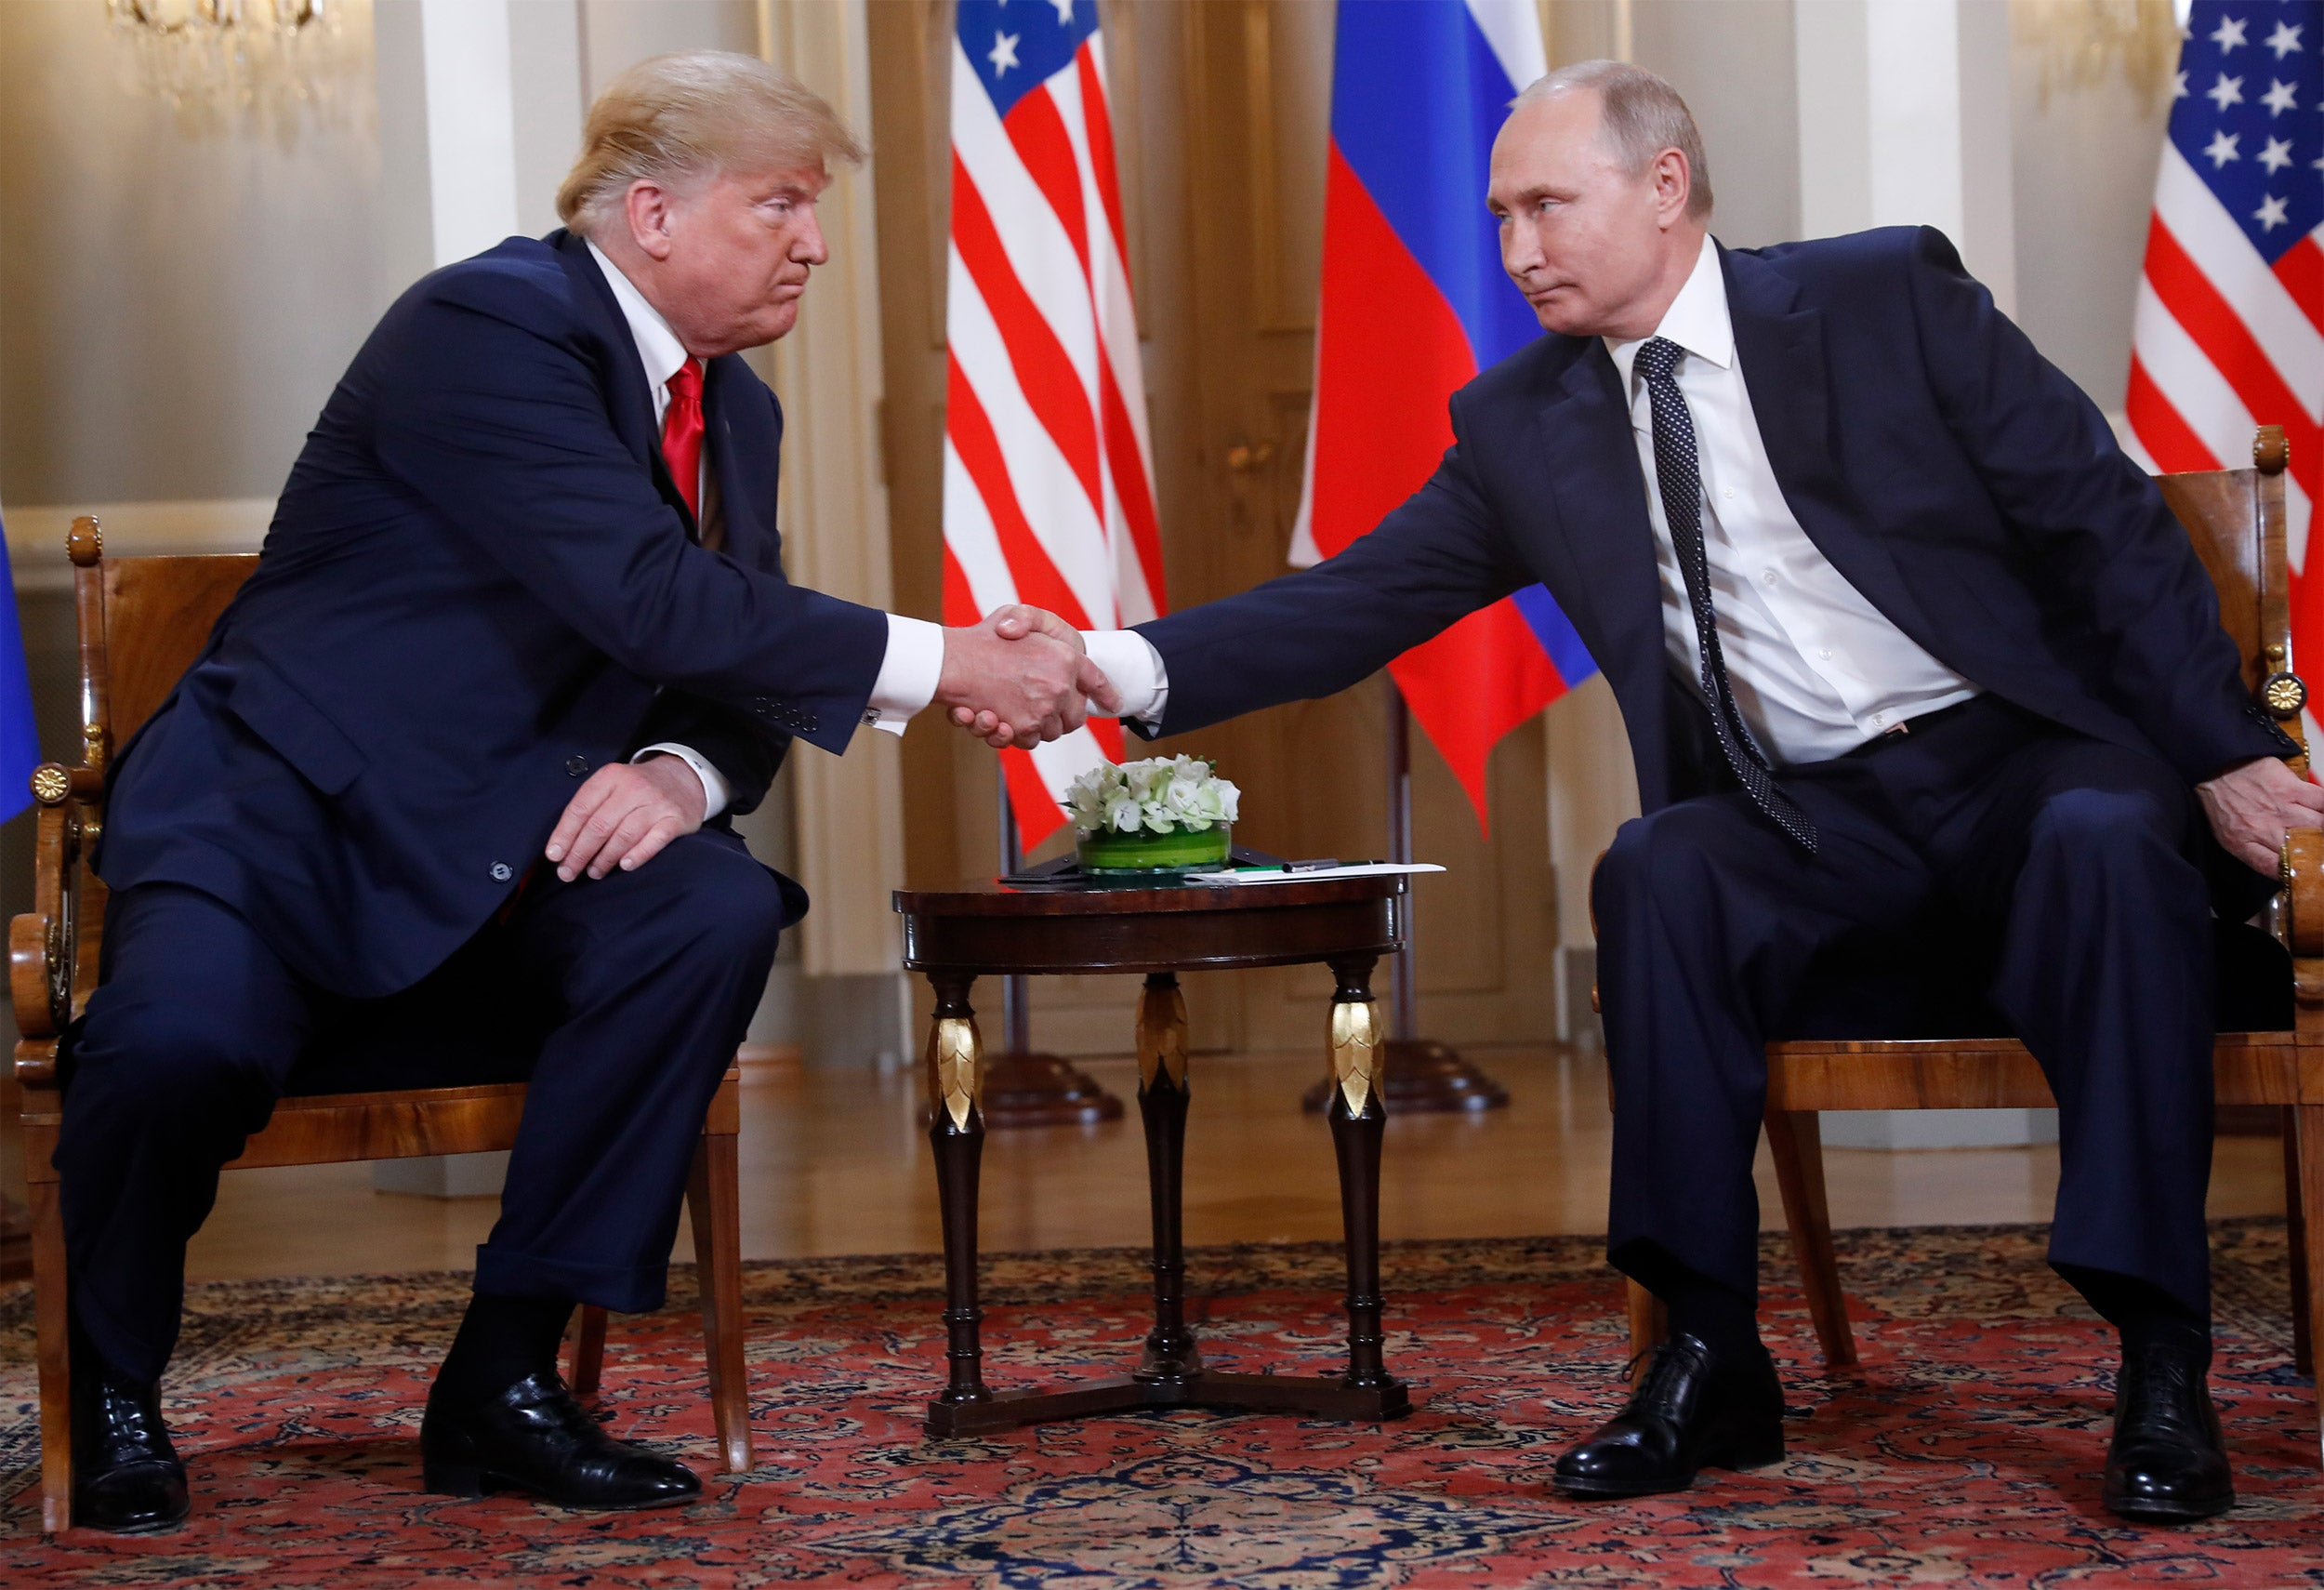 Trump and Putin shaking hands.